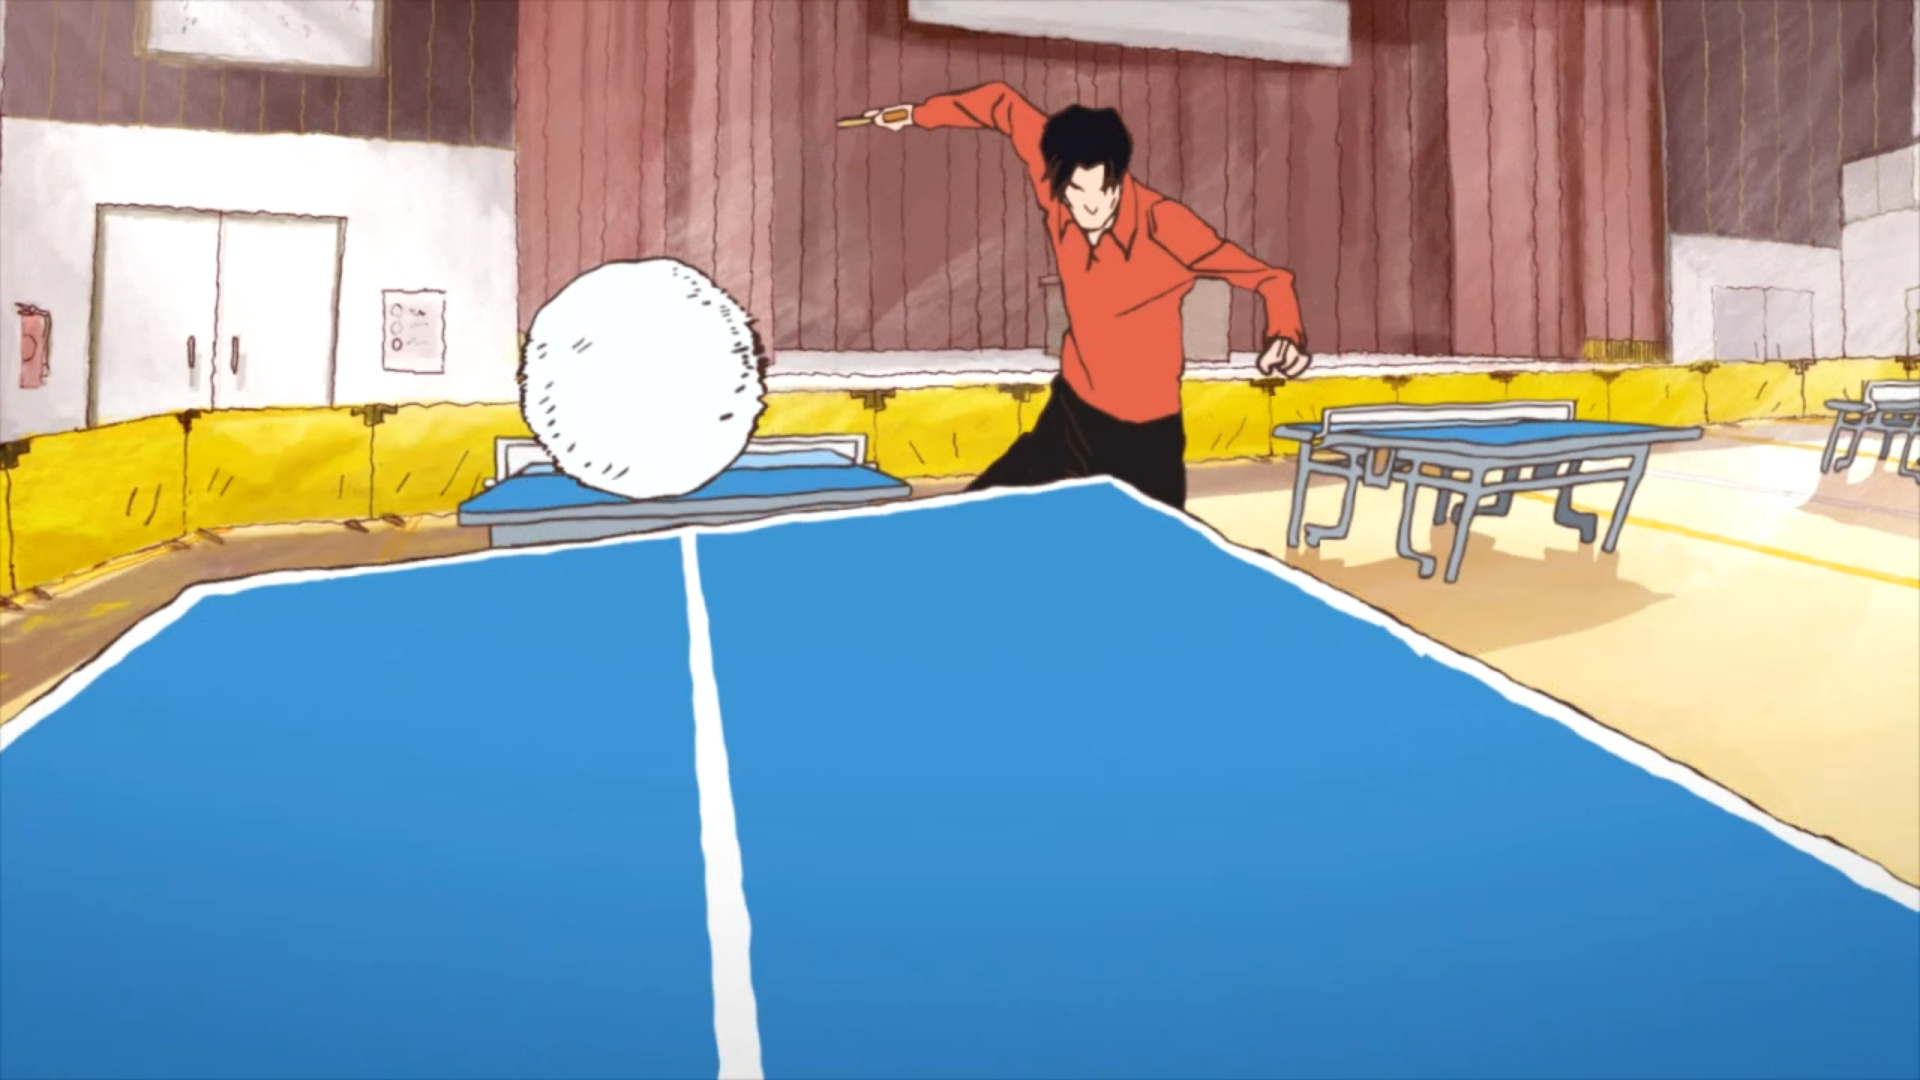 Images From Table Tennis The Animation 1470856 Hd Wallpaper